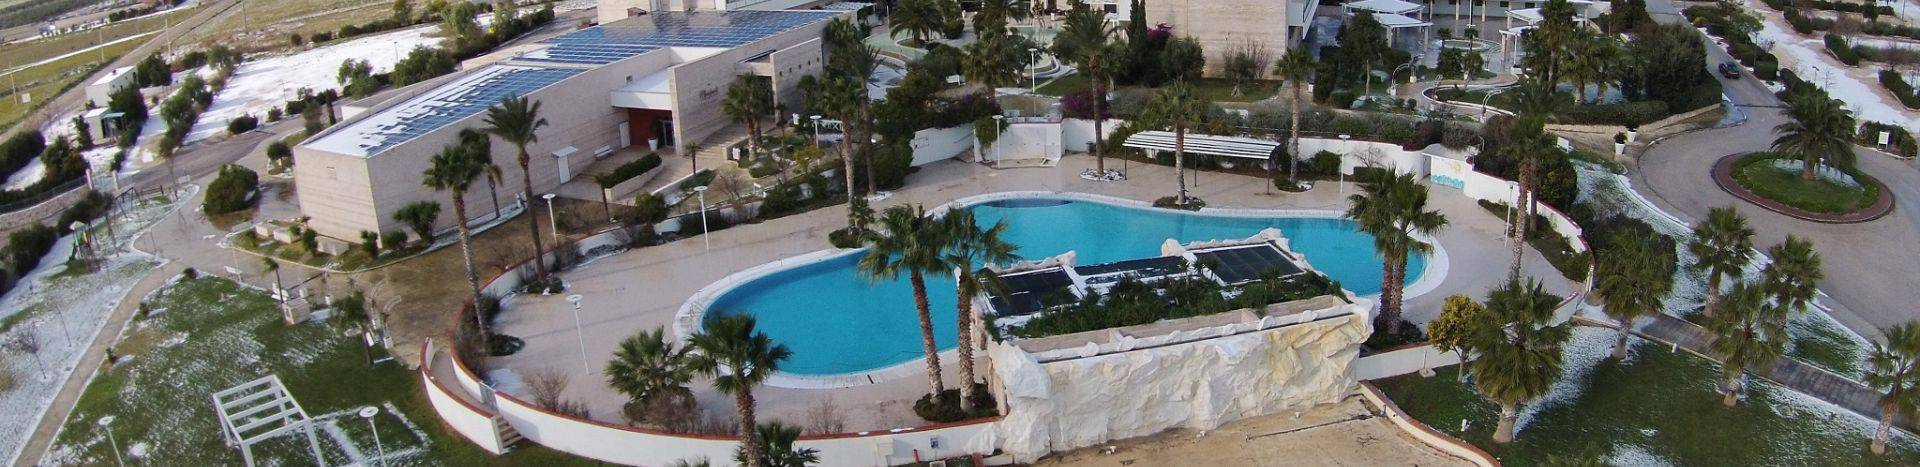 Space Hotels - MANFREDONIA -